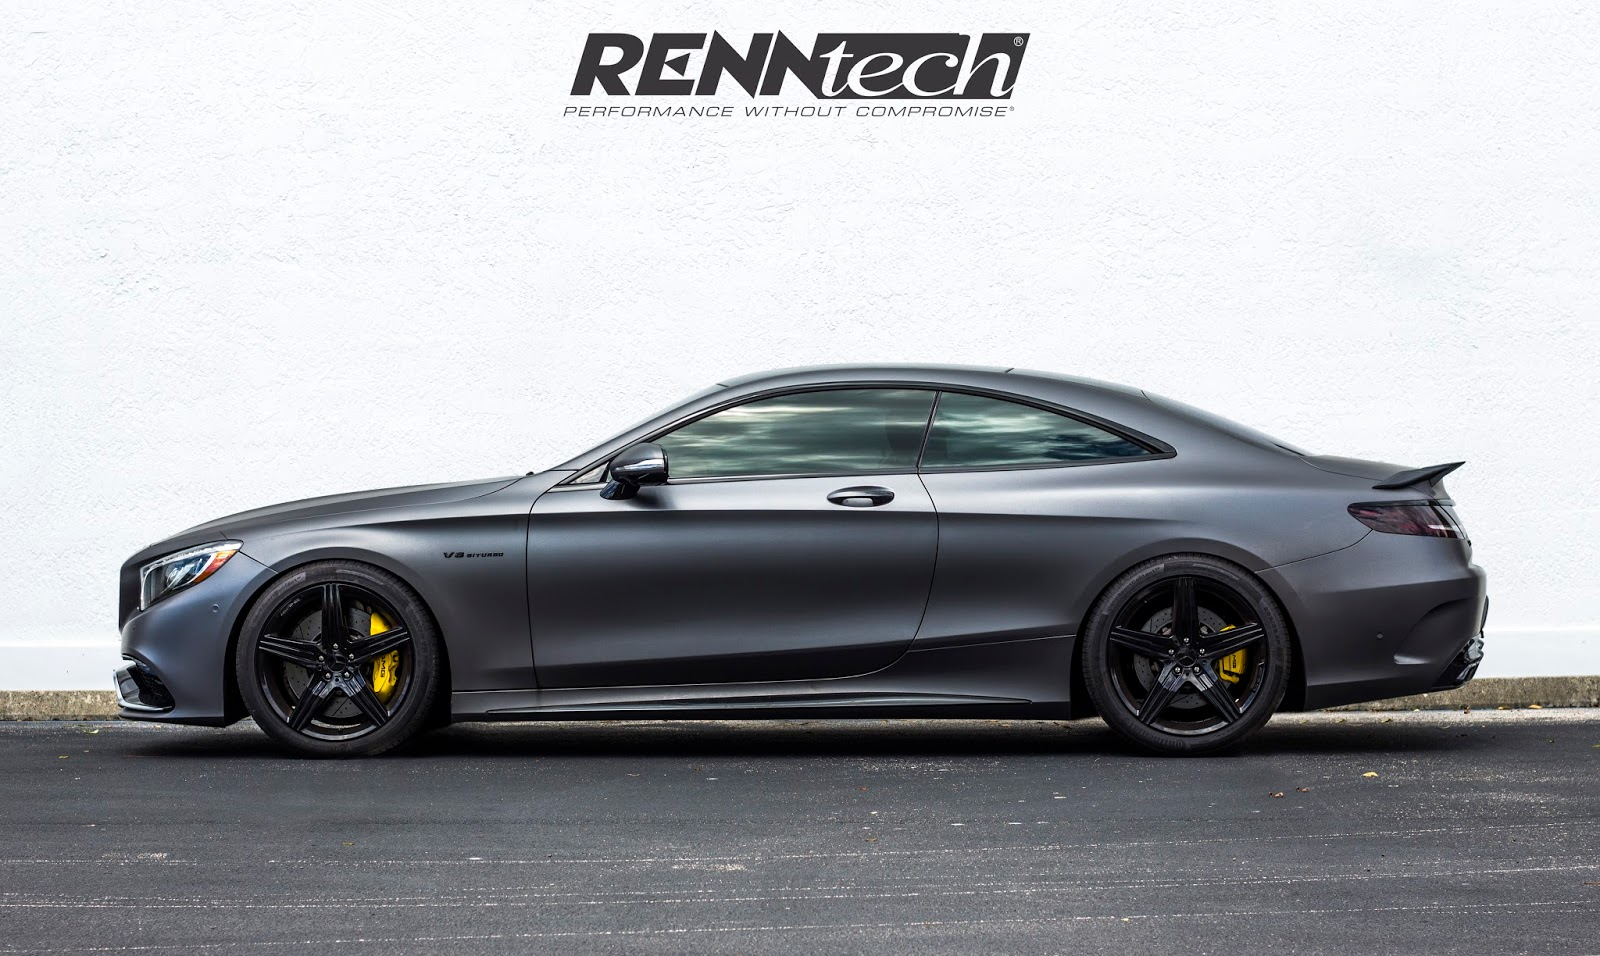 mercedes amg s 63 coupe gets tuning package from renntech. Black Bedroom Furniture Sets. Home Design Ideas